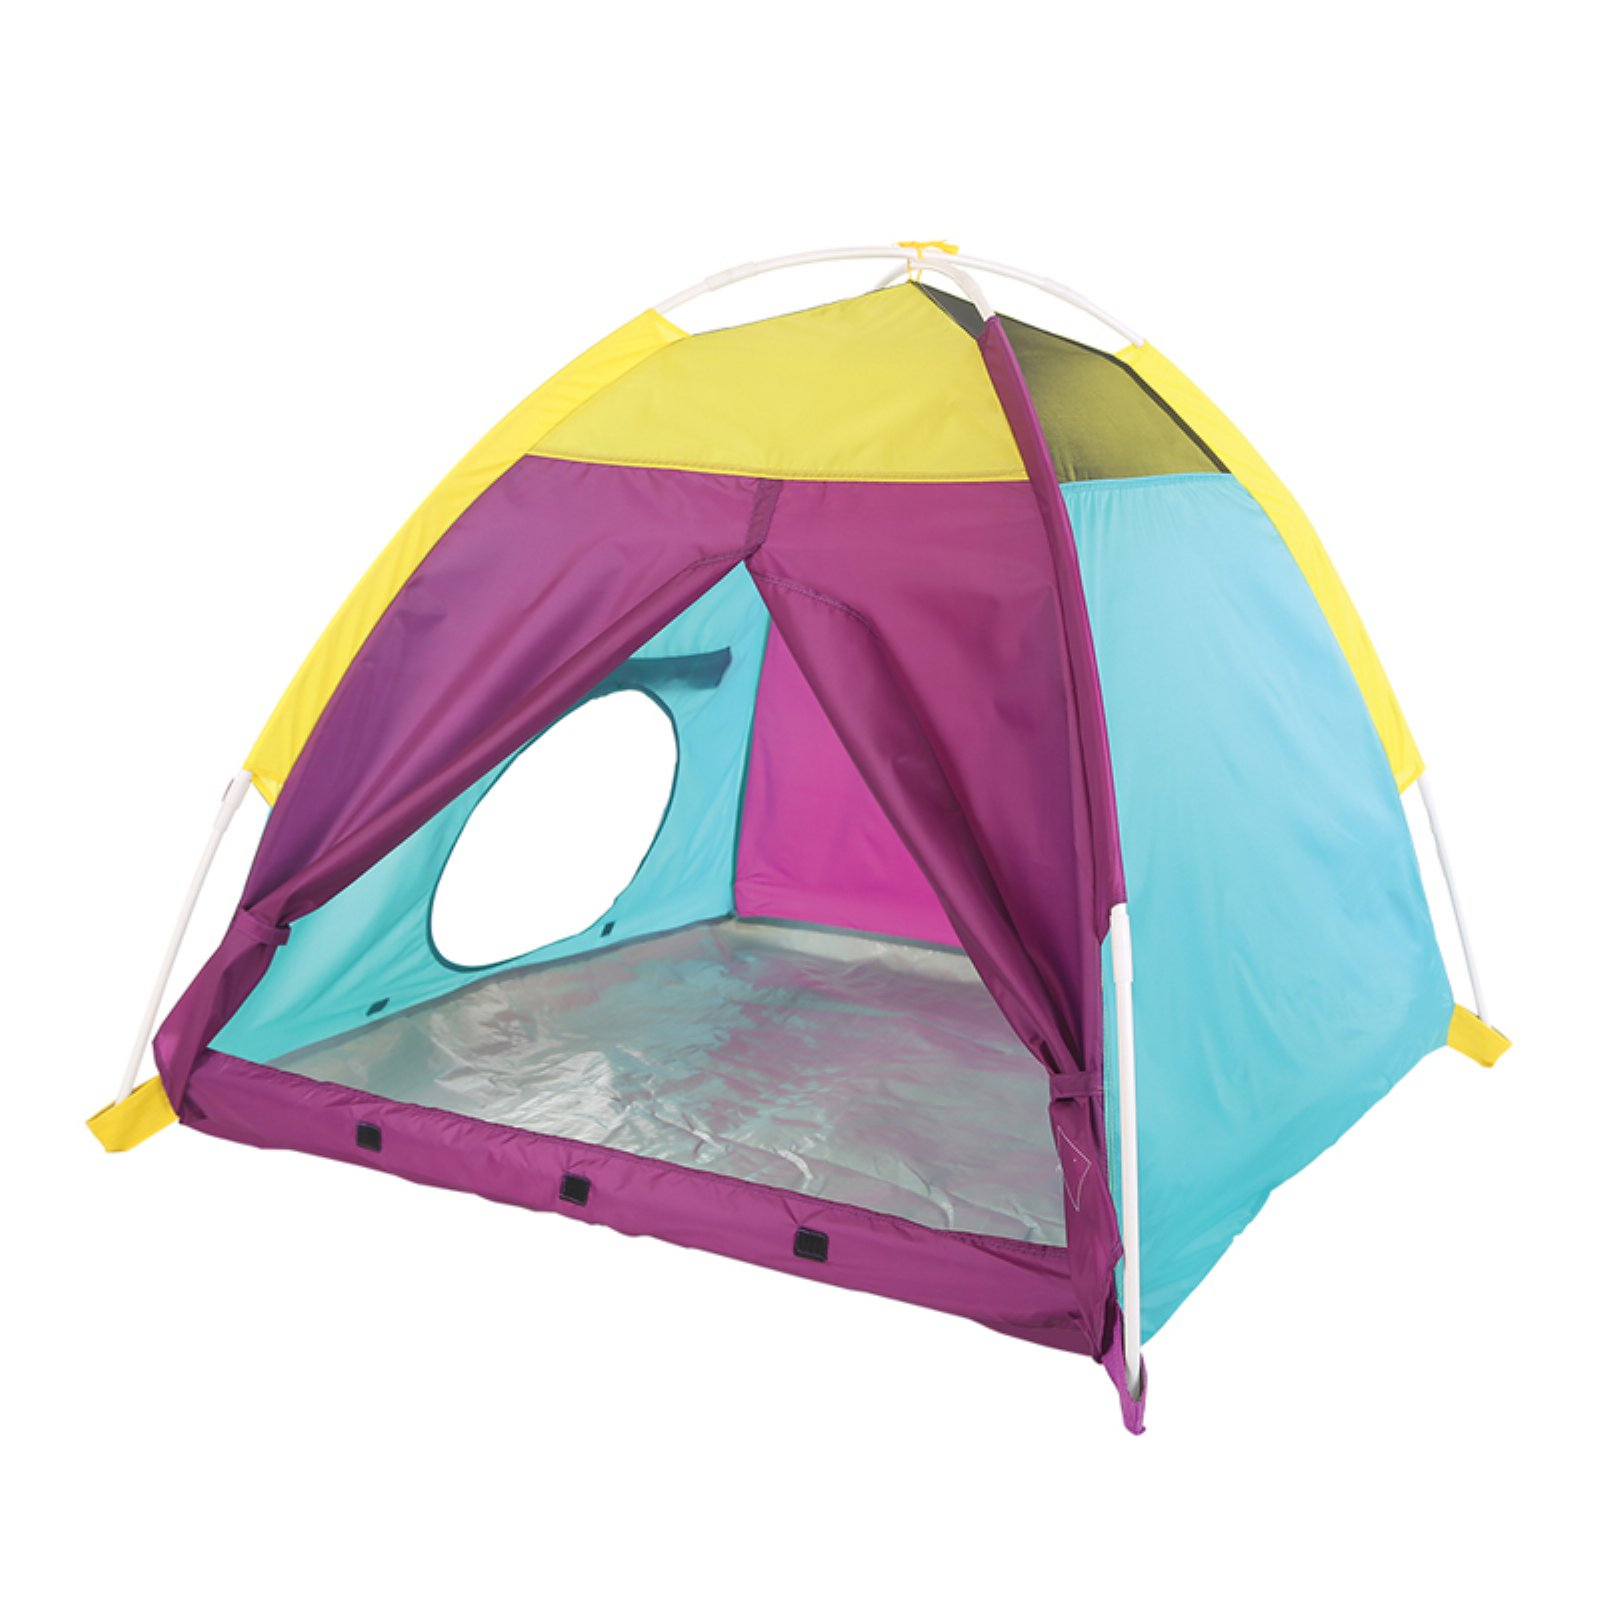 First Aid Tent Stock Photos Images Alamy  sc 1 st  Best Tent 2018 : marmot grid tent - memphite.com